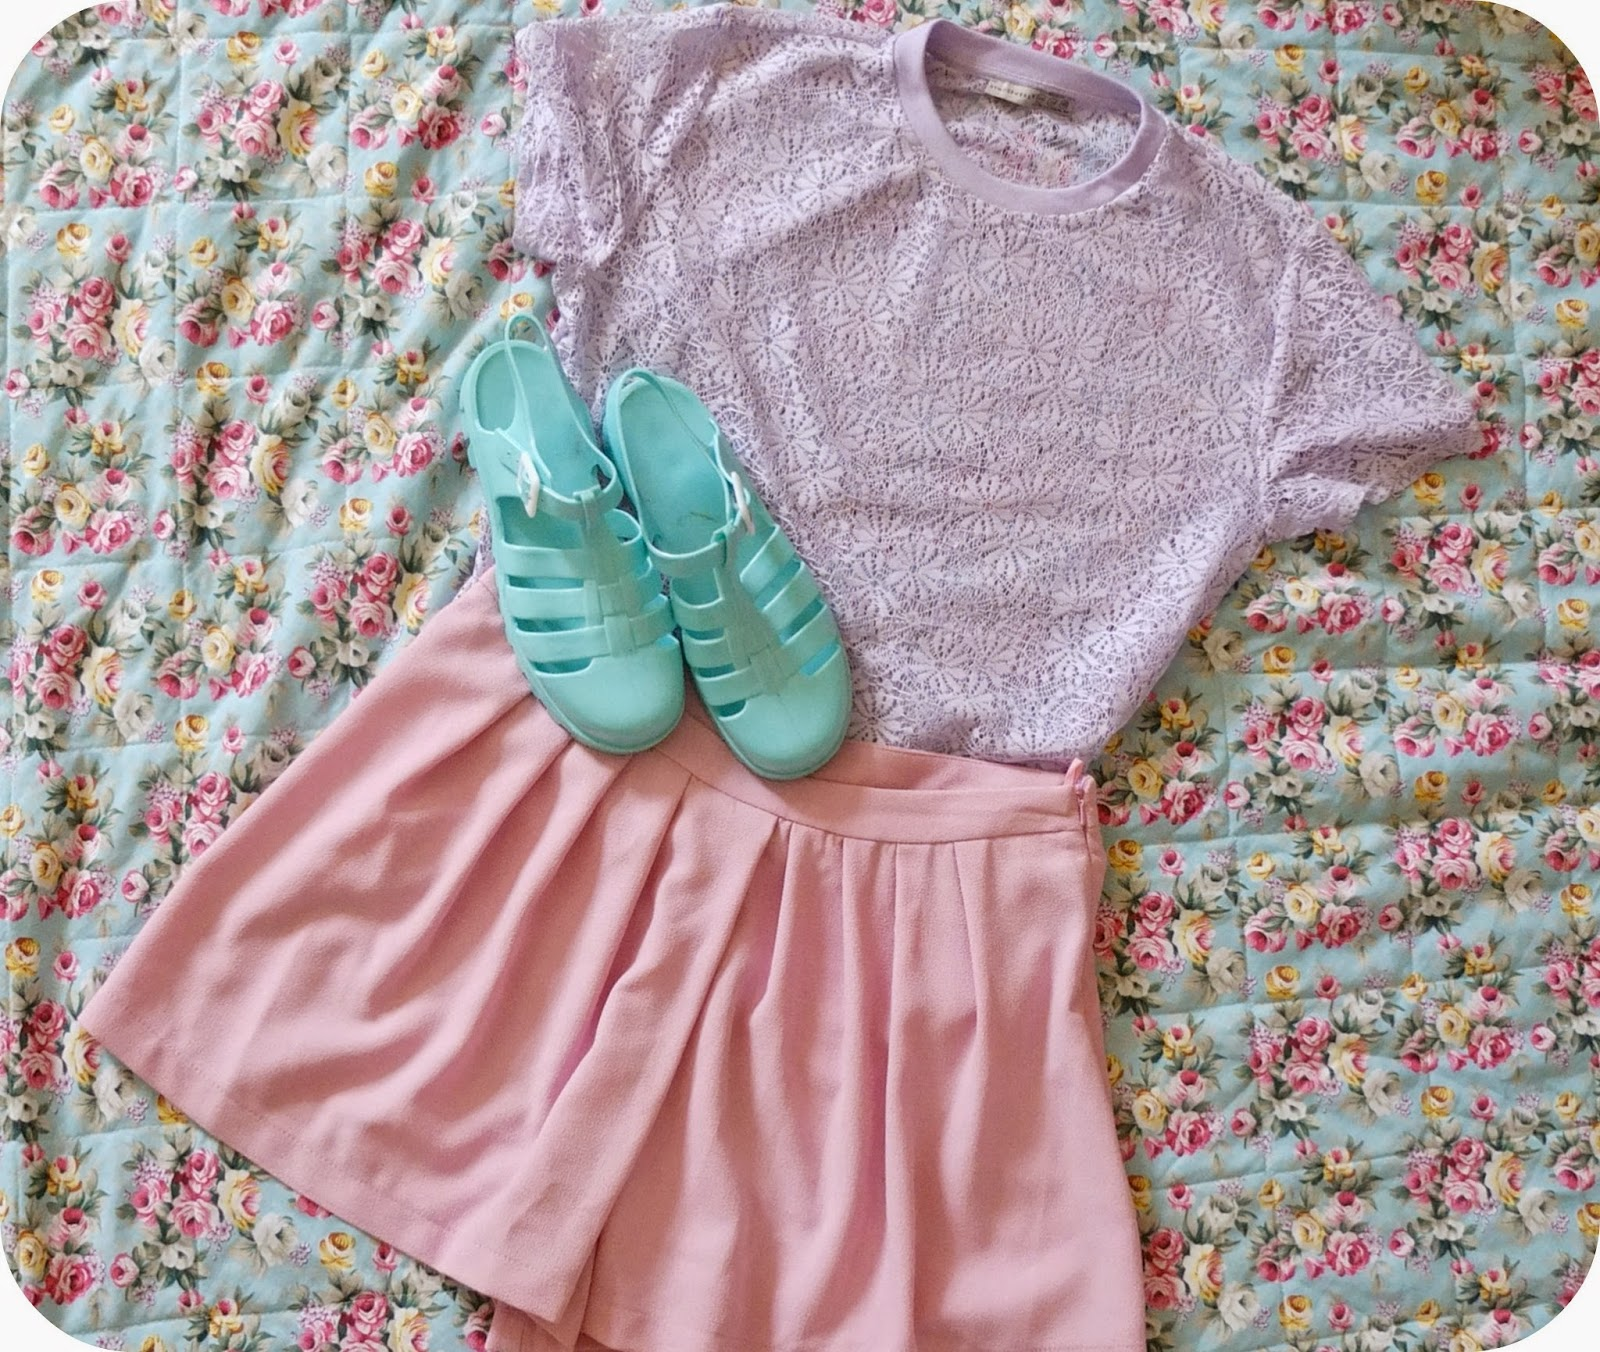 Pastel Fashion Blog Post on Hello Terri Lowe Featuring Jelly Shoes, Pink Shoes and Lace Top